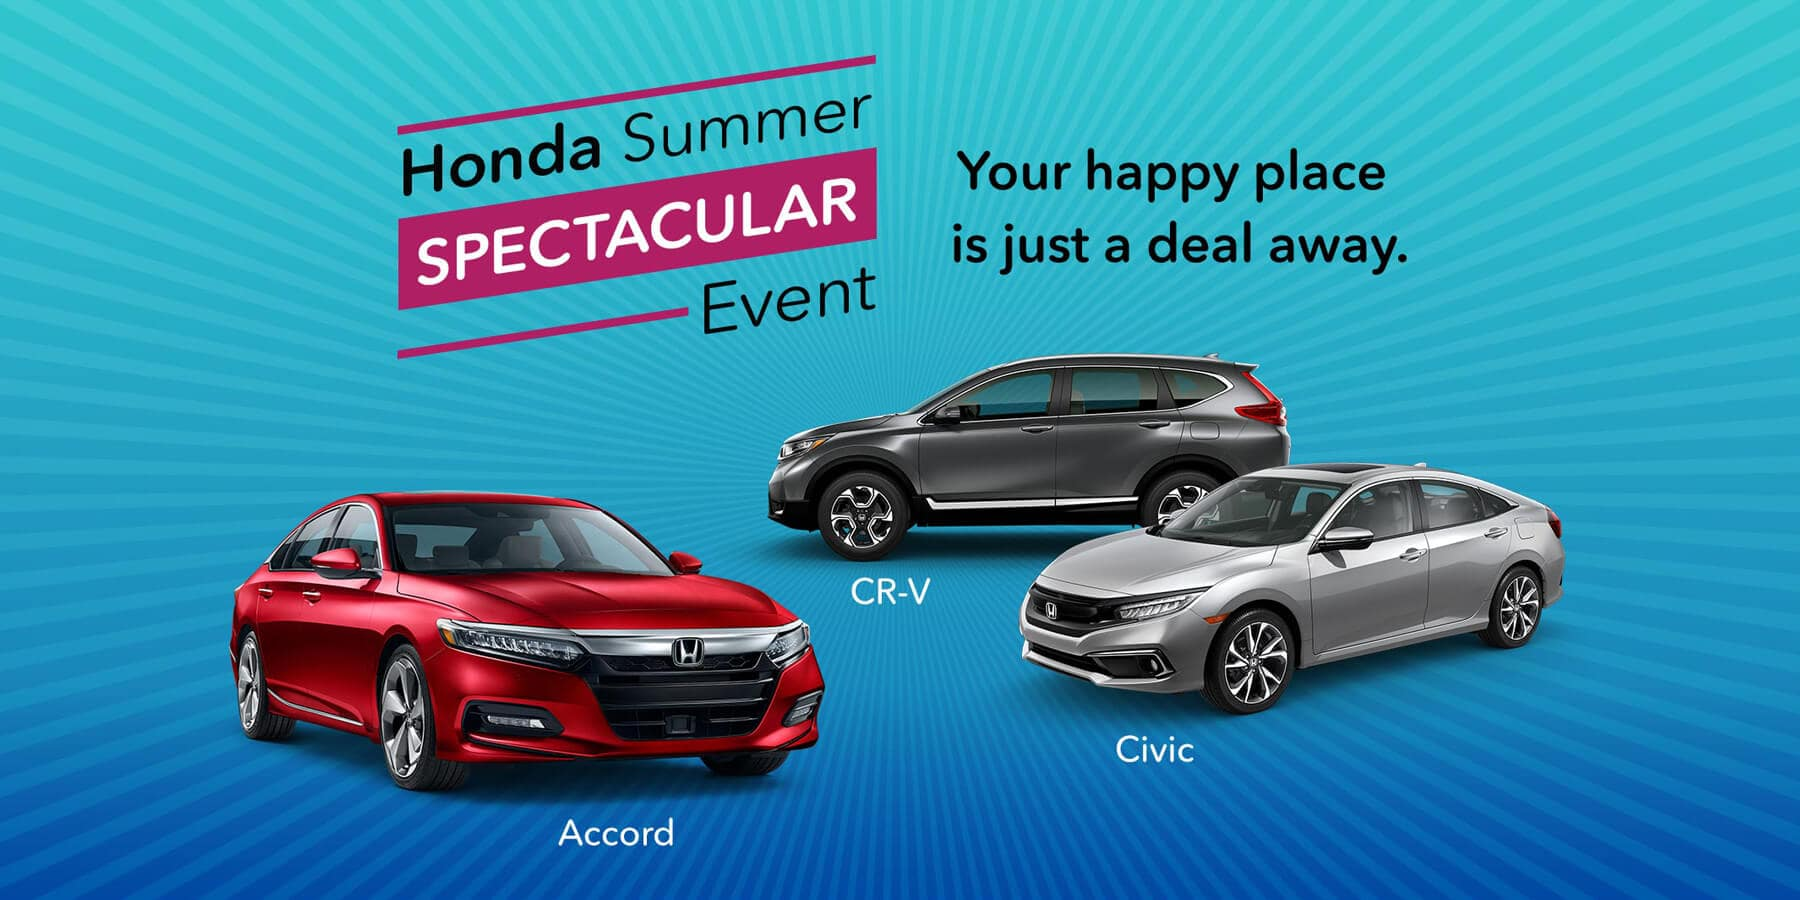 2019 Honda Summer Spectacular Event Capital Region Honda Dealers HP Slide